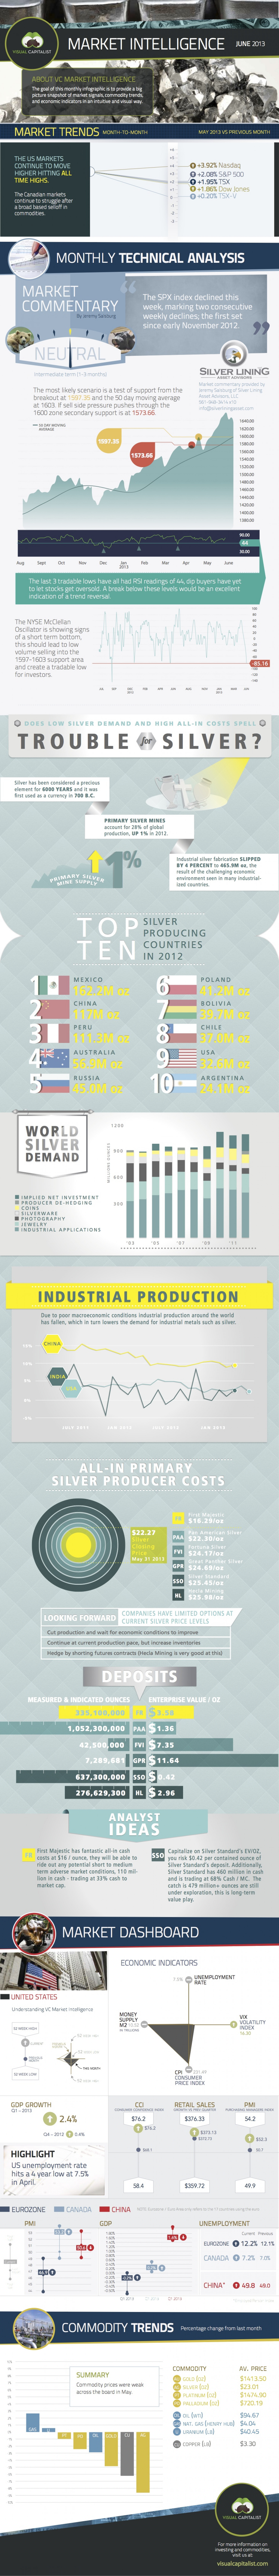 VC Market Intelligence June 2013 Infographic